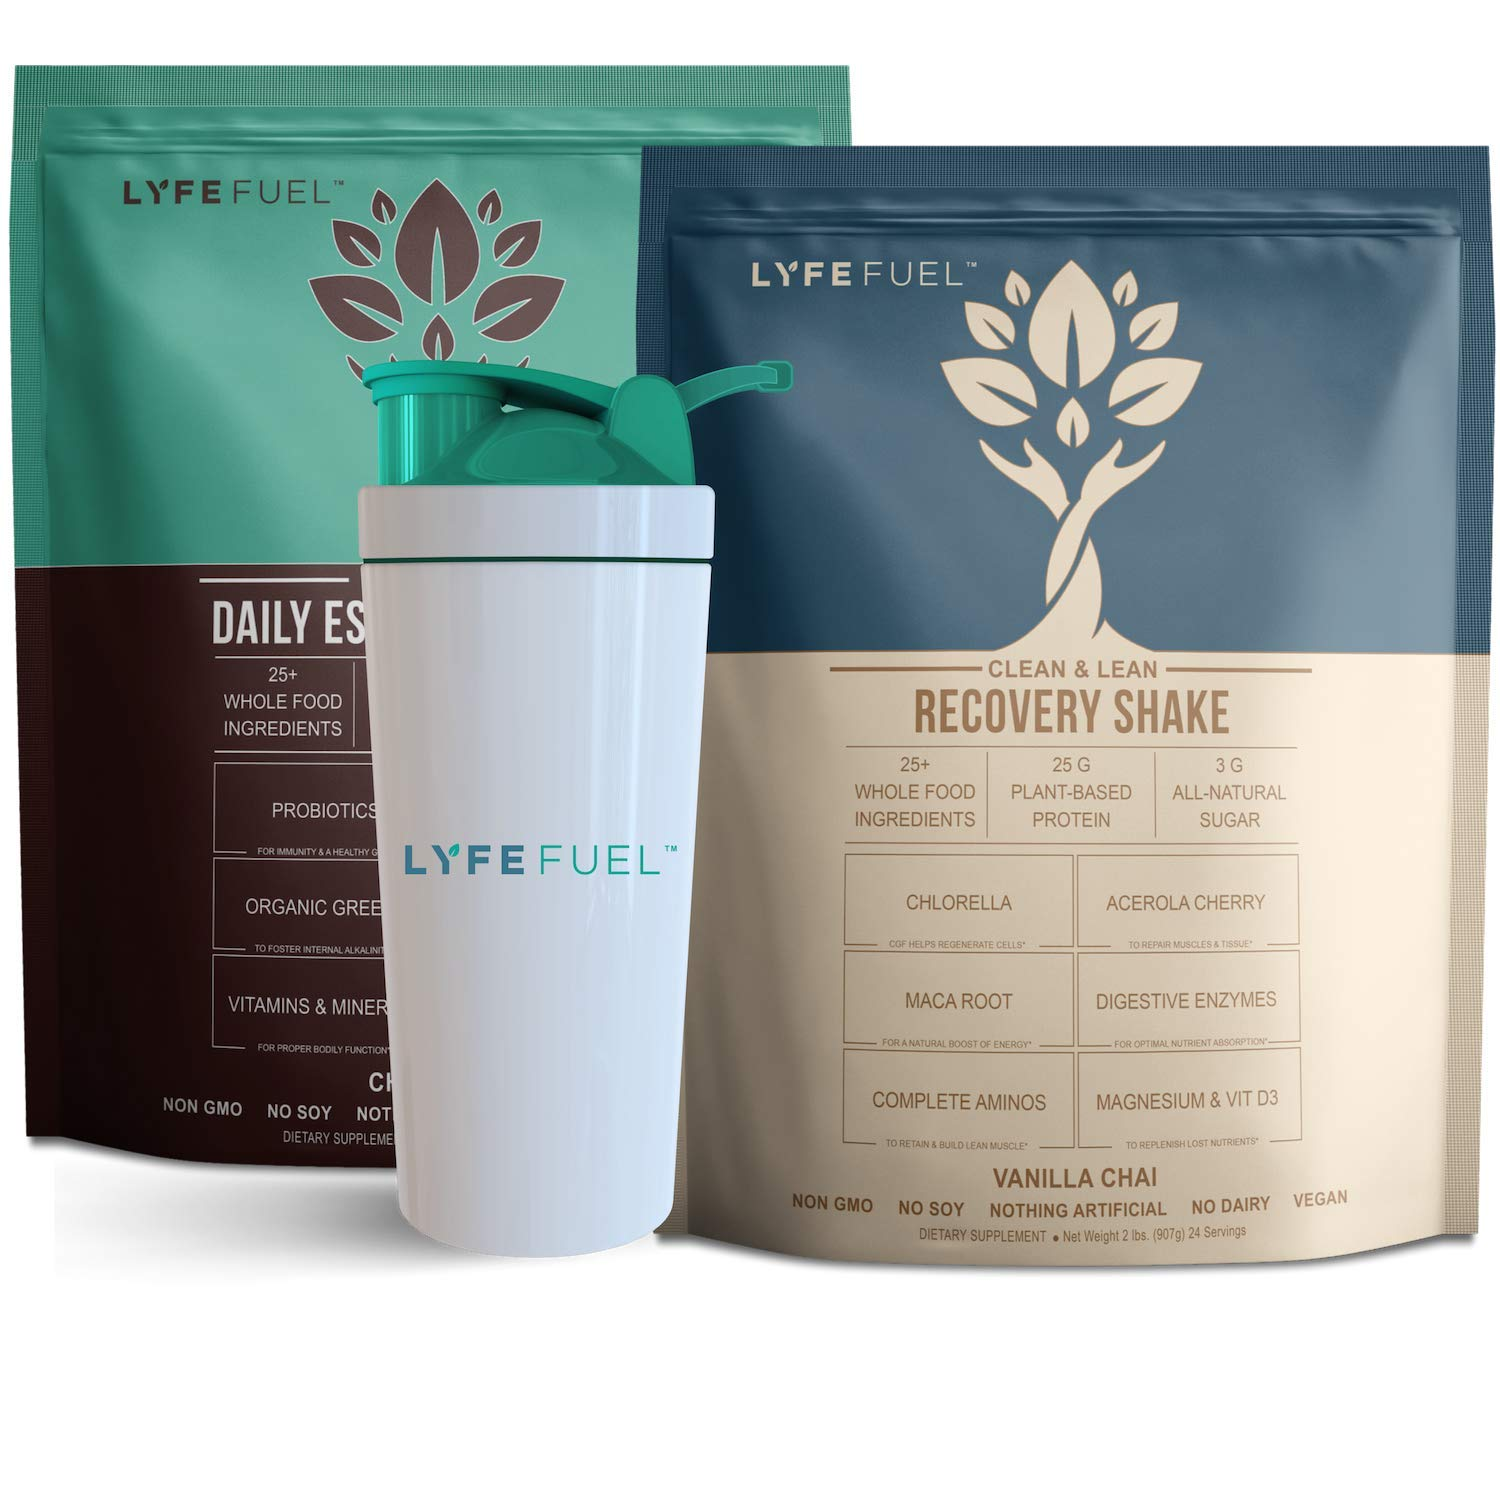 LYFE FUEL Meal Replacement + Post Workout Recovery Shake Bundle | Keto, Vegan & Gluten Free Plant Based Protein | Chocolate + Vanilla | Made with Superfoods + Organic Greens | 48 Servings by Lyfe Fuel (Image #1)